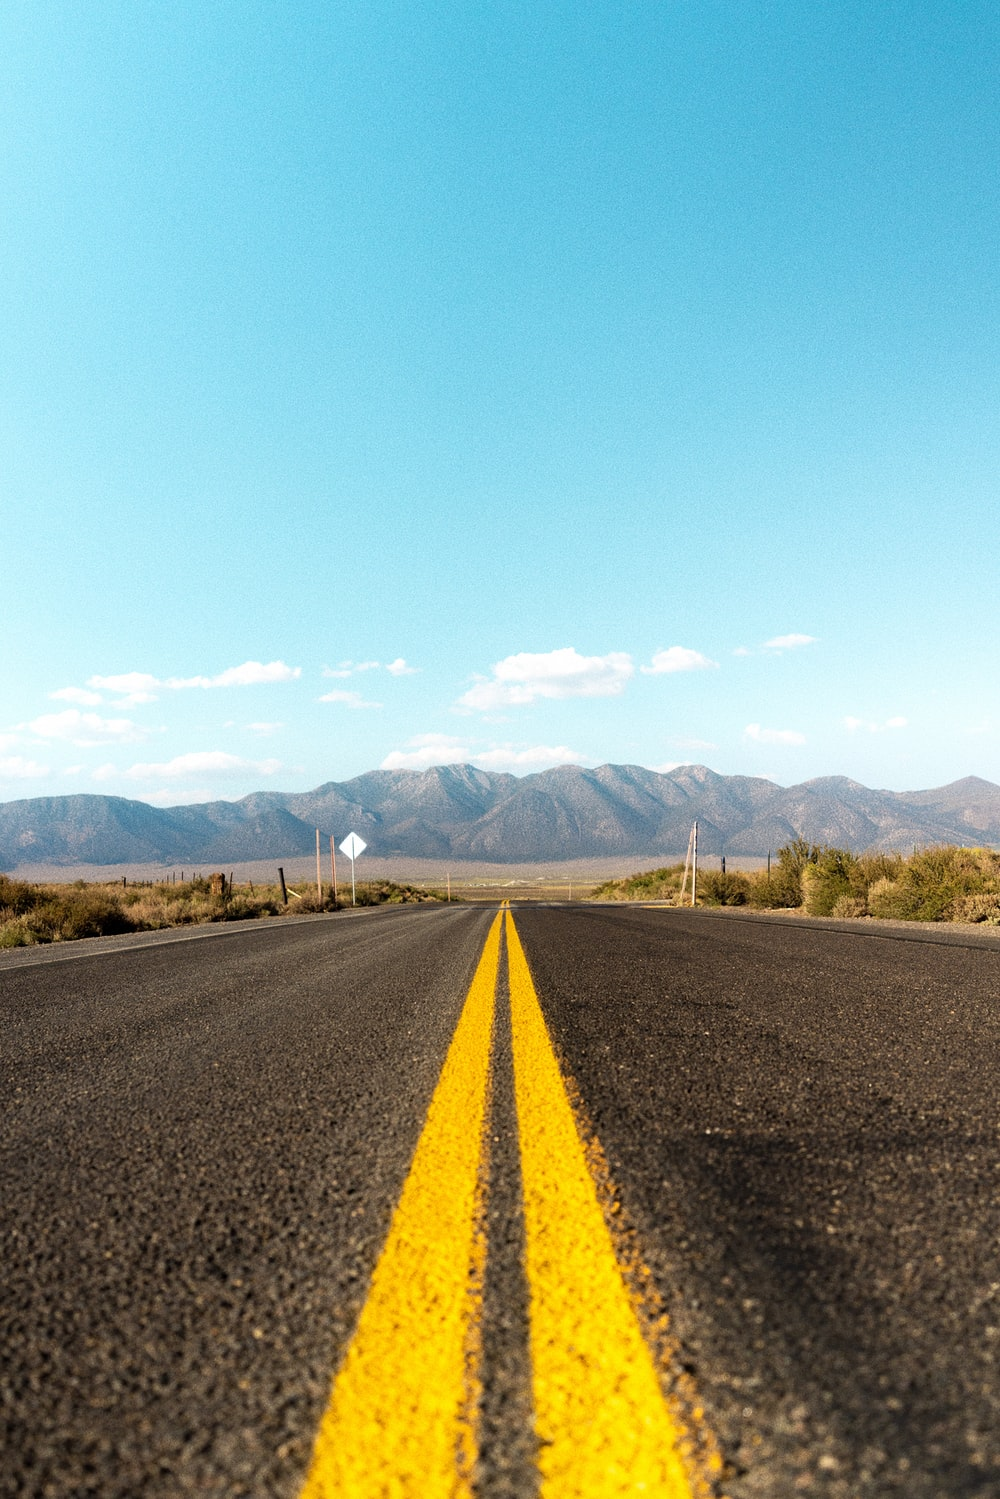 gray asphalt road near green grass field and mountains during daytime